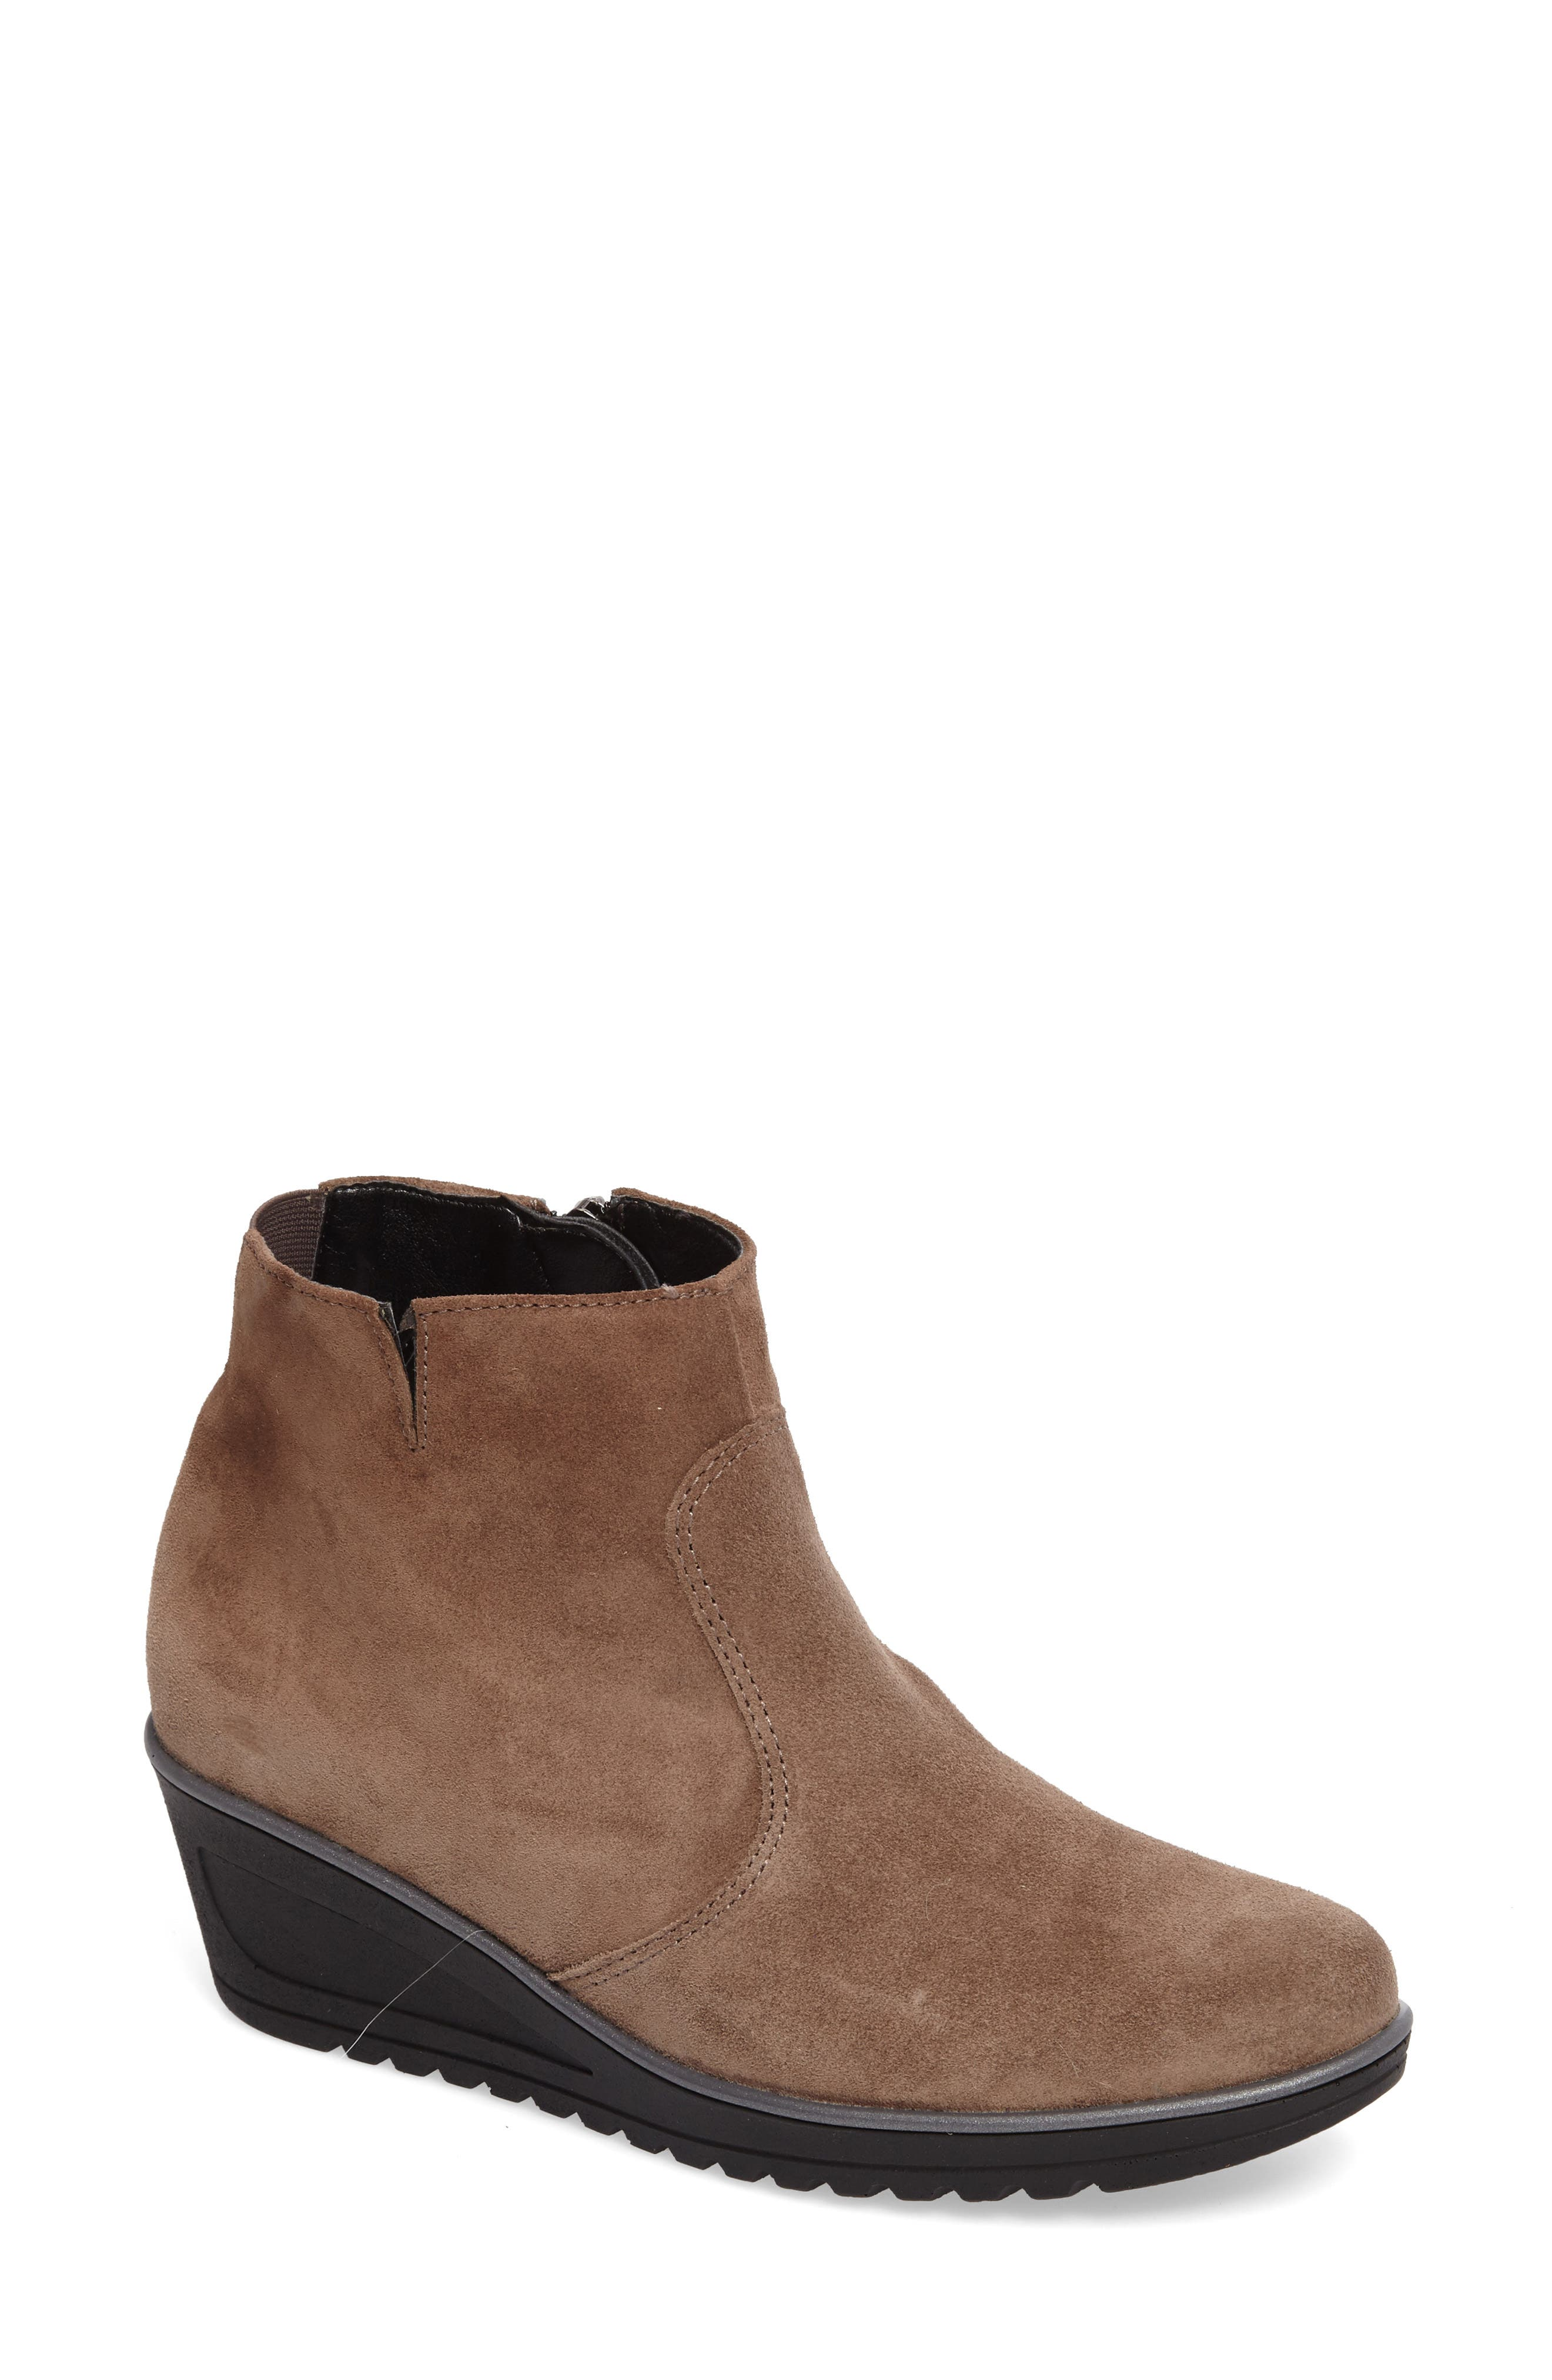 Hessa Wedge Bootie,                             Main thumbnail 1, color,                             Teak Suede